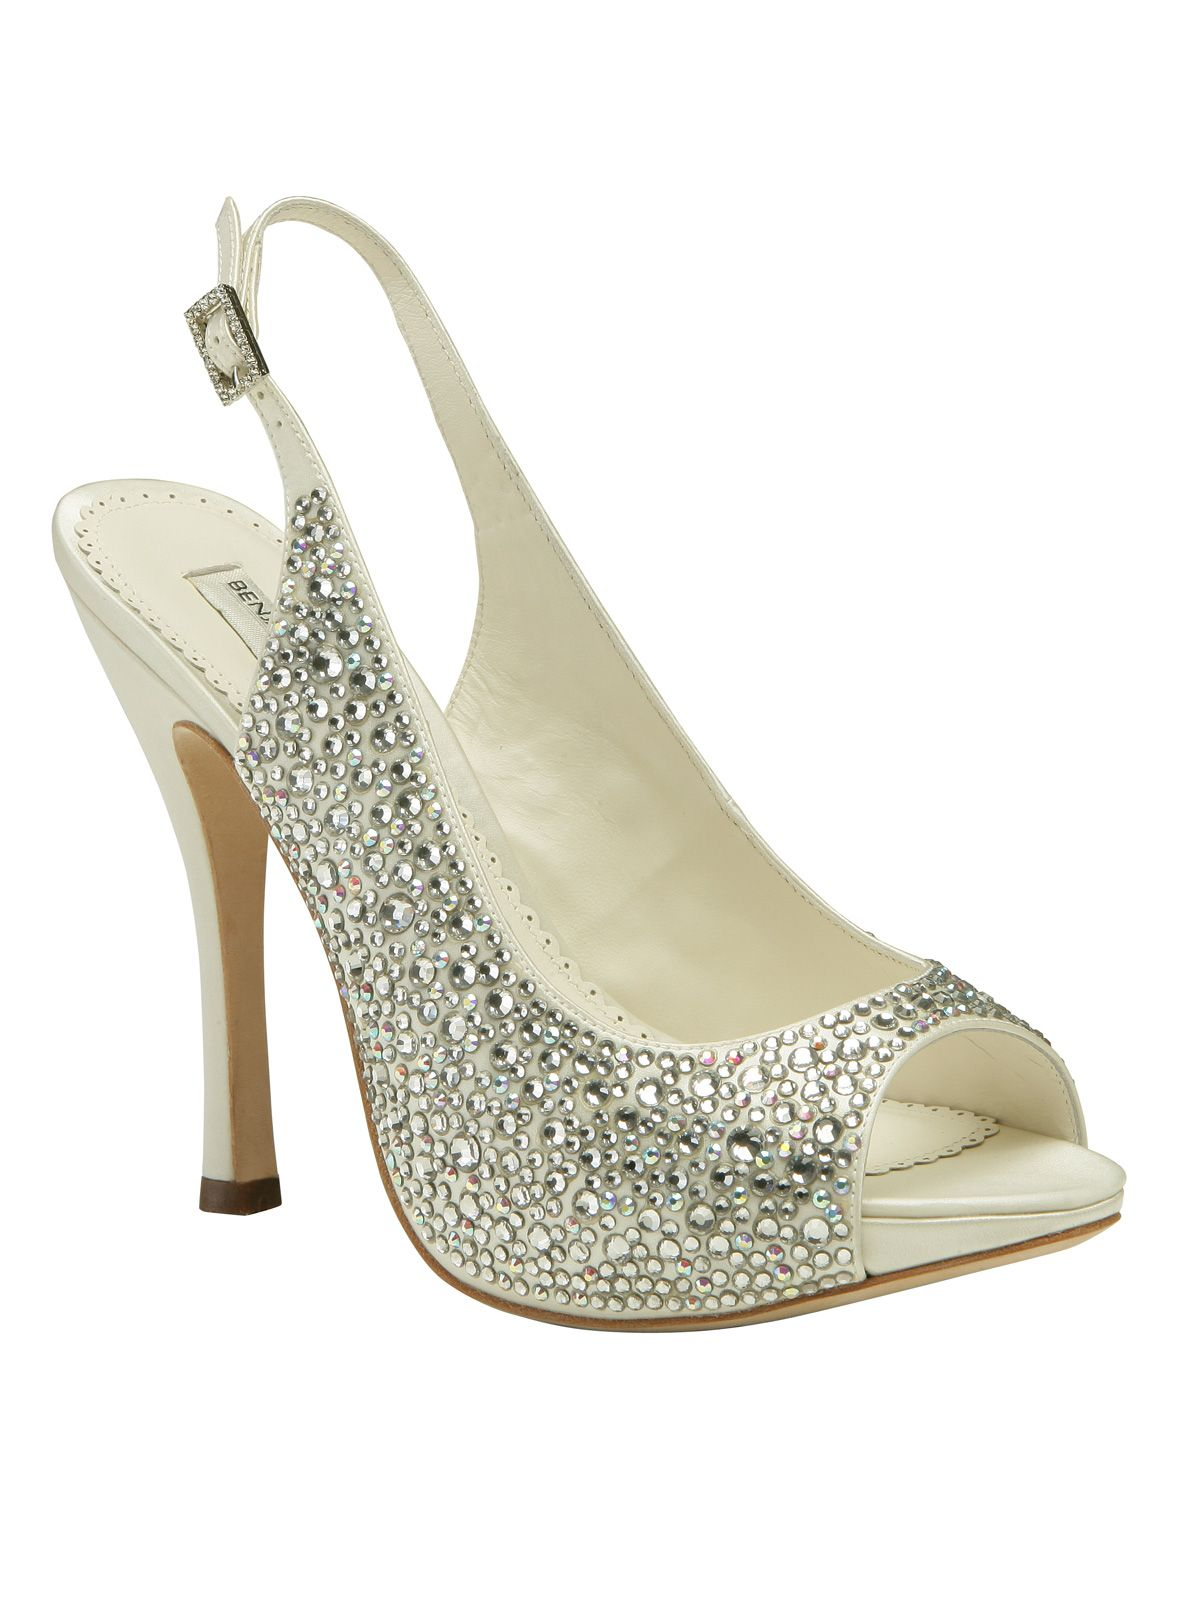 1000  images about Bridal Shoes inspiration on Pinterest | Flats ...